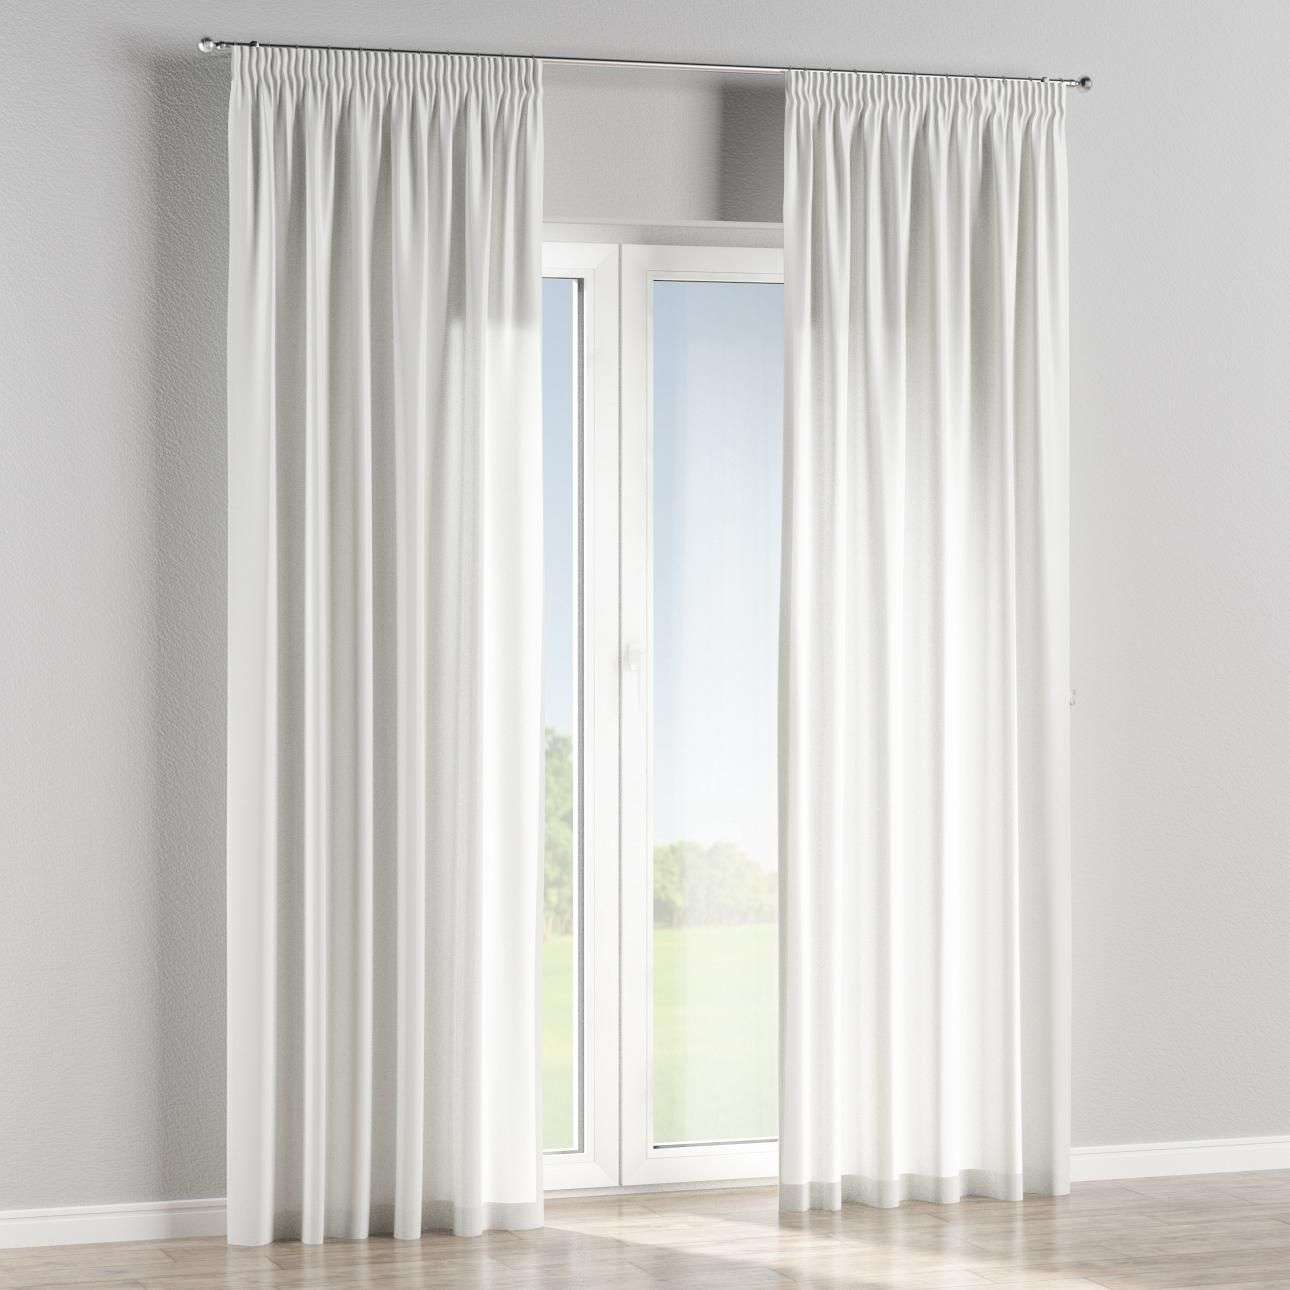 Pencil pleat lined curtains in collection Jupiter, fabric: 127-72